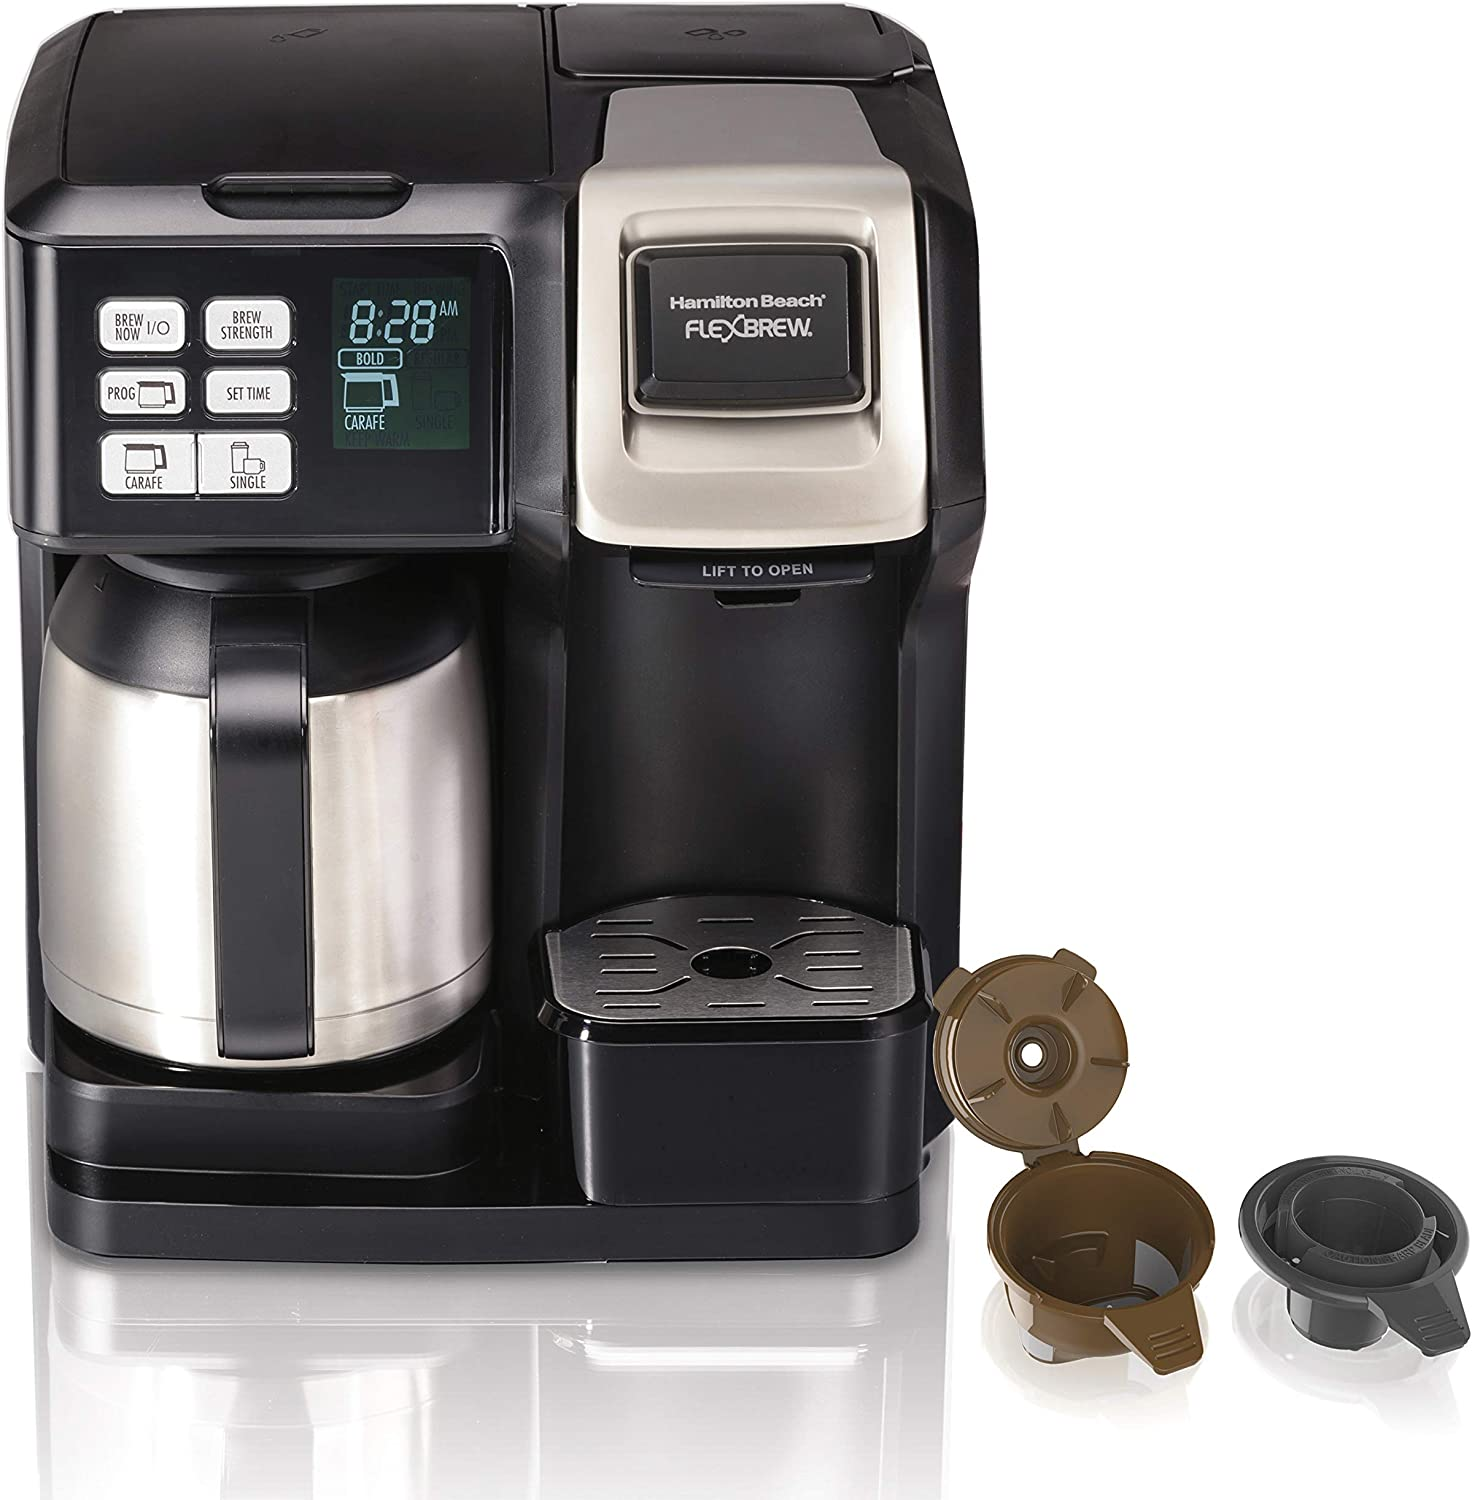 Hamilton Beach FlexBrew Thermal Coffee Maker, Single Serve & Full 10 Cup Pot, Compatible for Pods or Grounds, Programmable, Black and Stainless (49966), (Renewed)